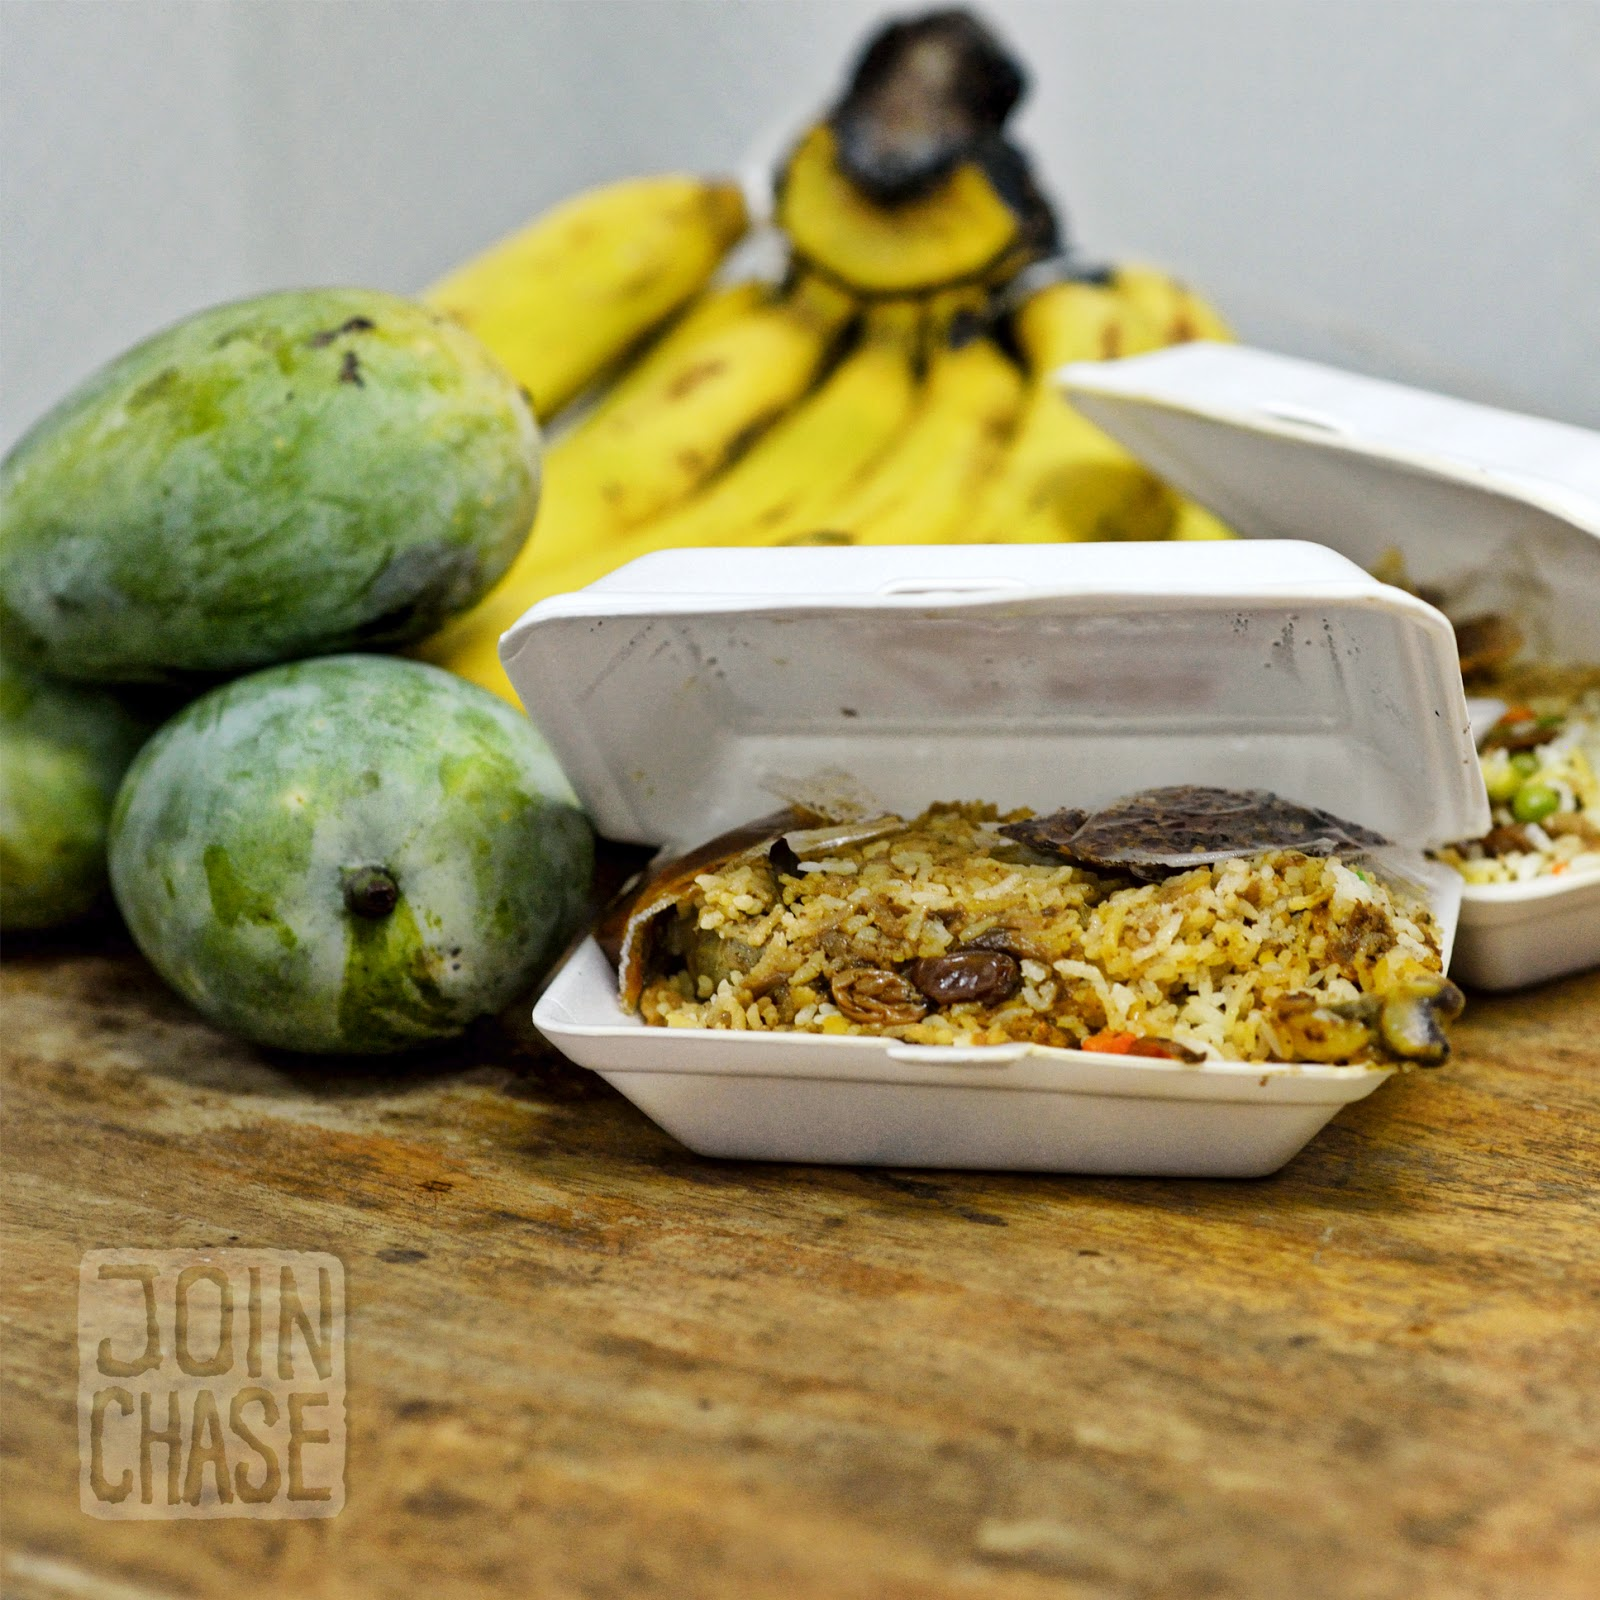 Bananas, mangos, and meals provided by coworkers and neighbors in Yangon, Myanmar.